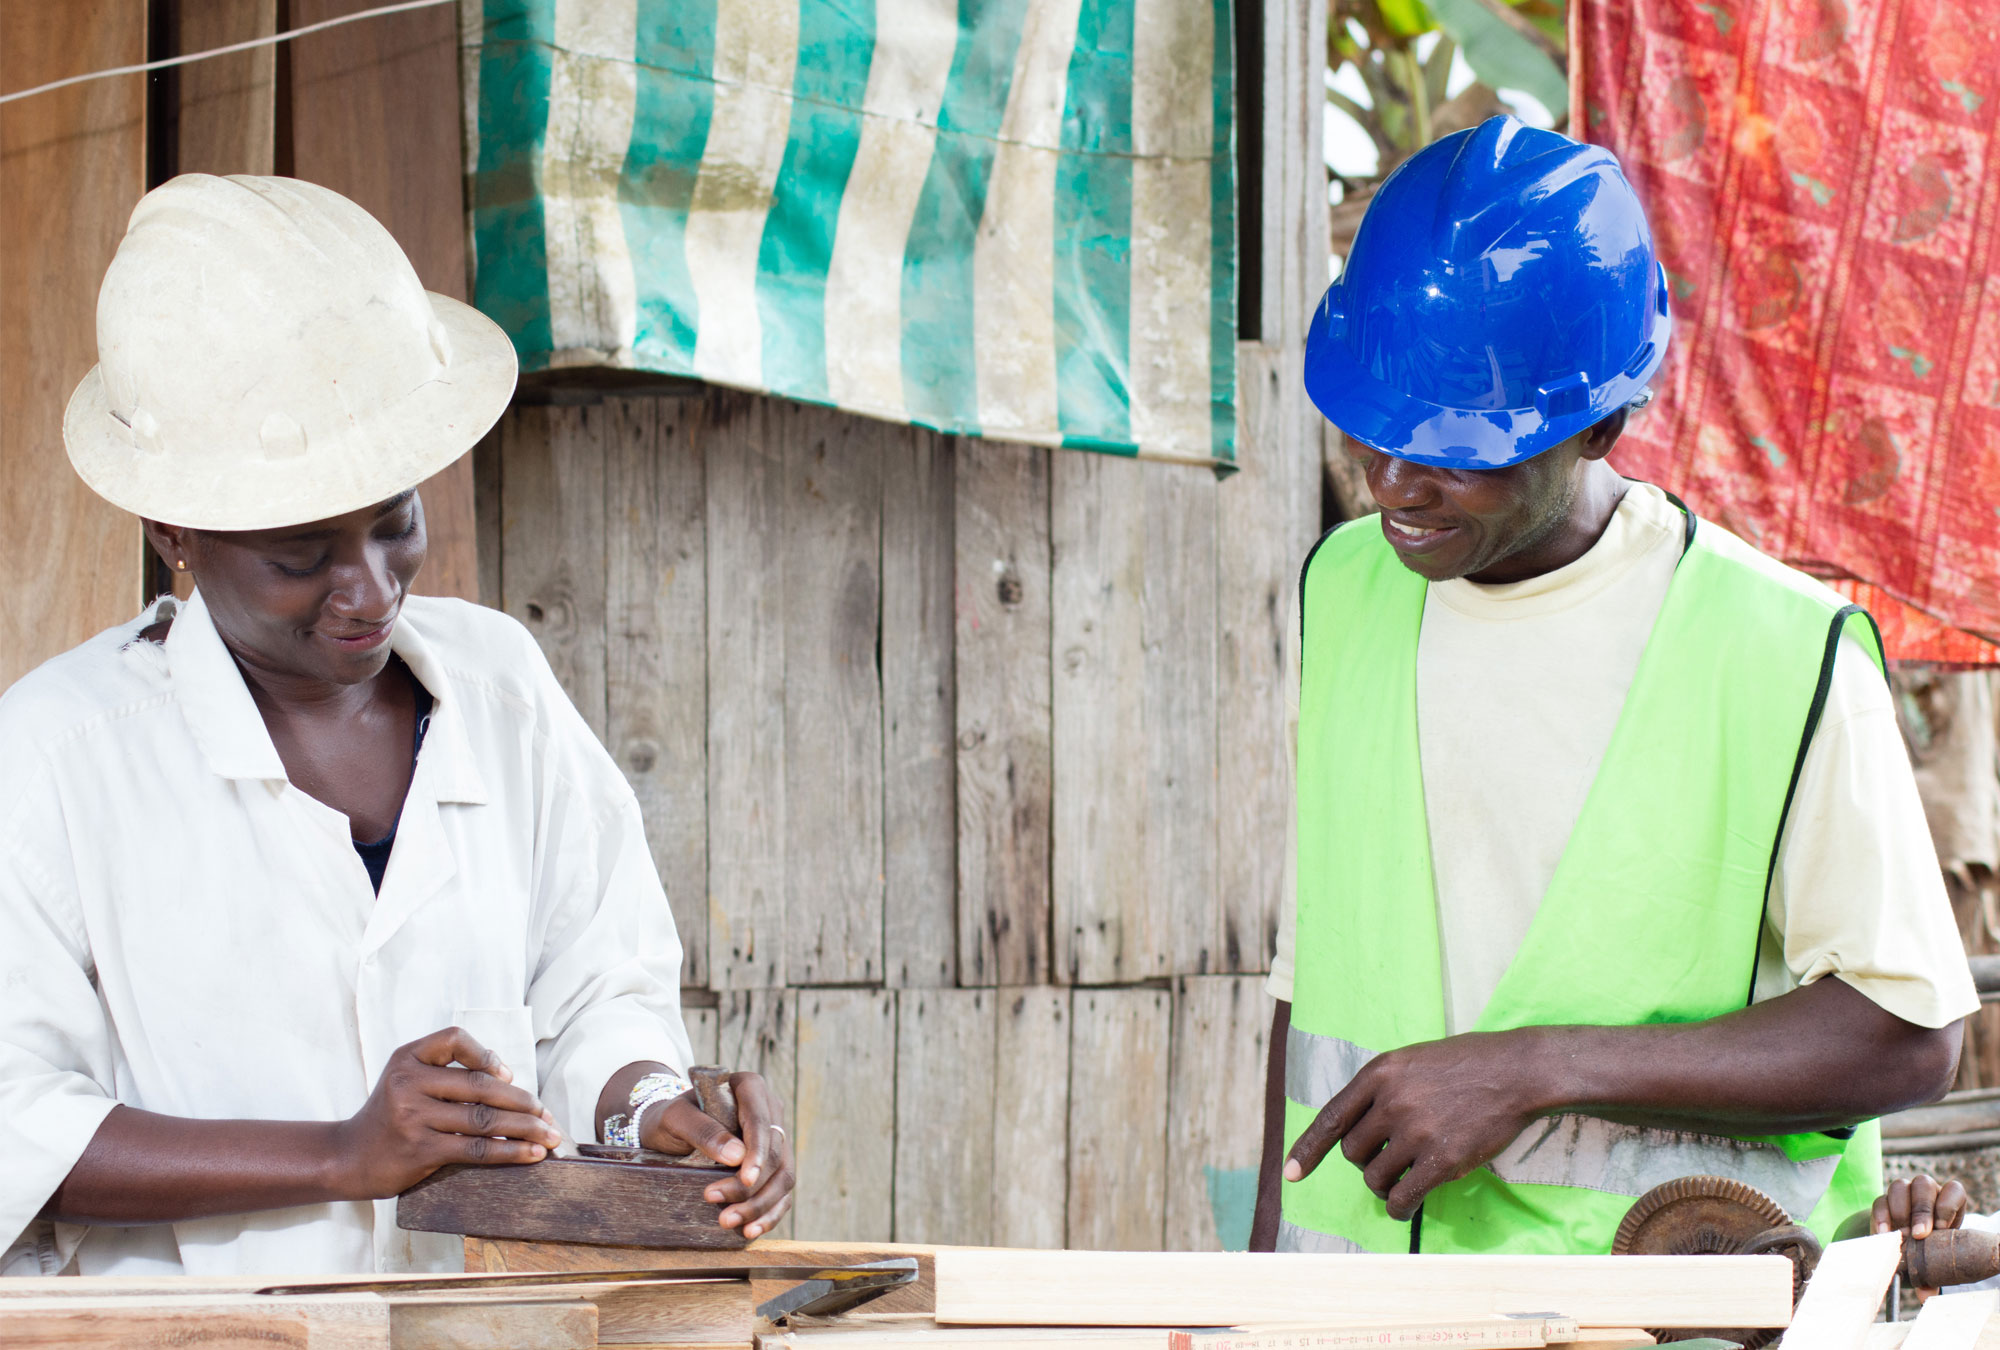 Two people in hard hats at work